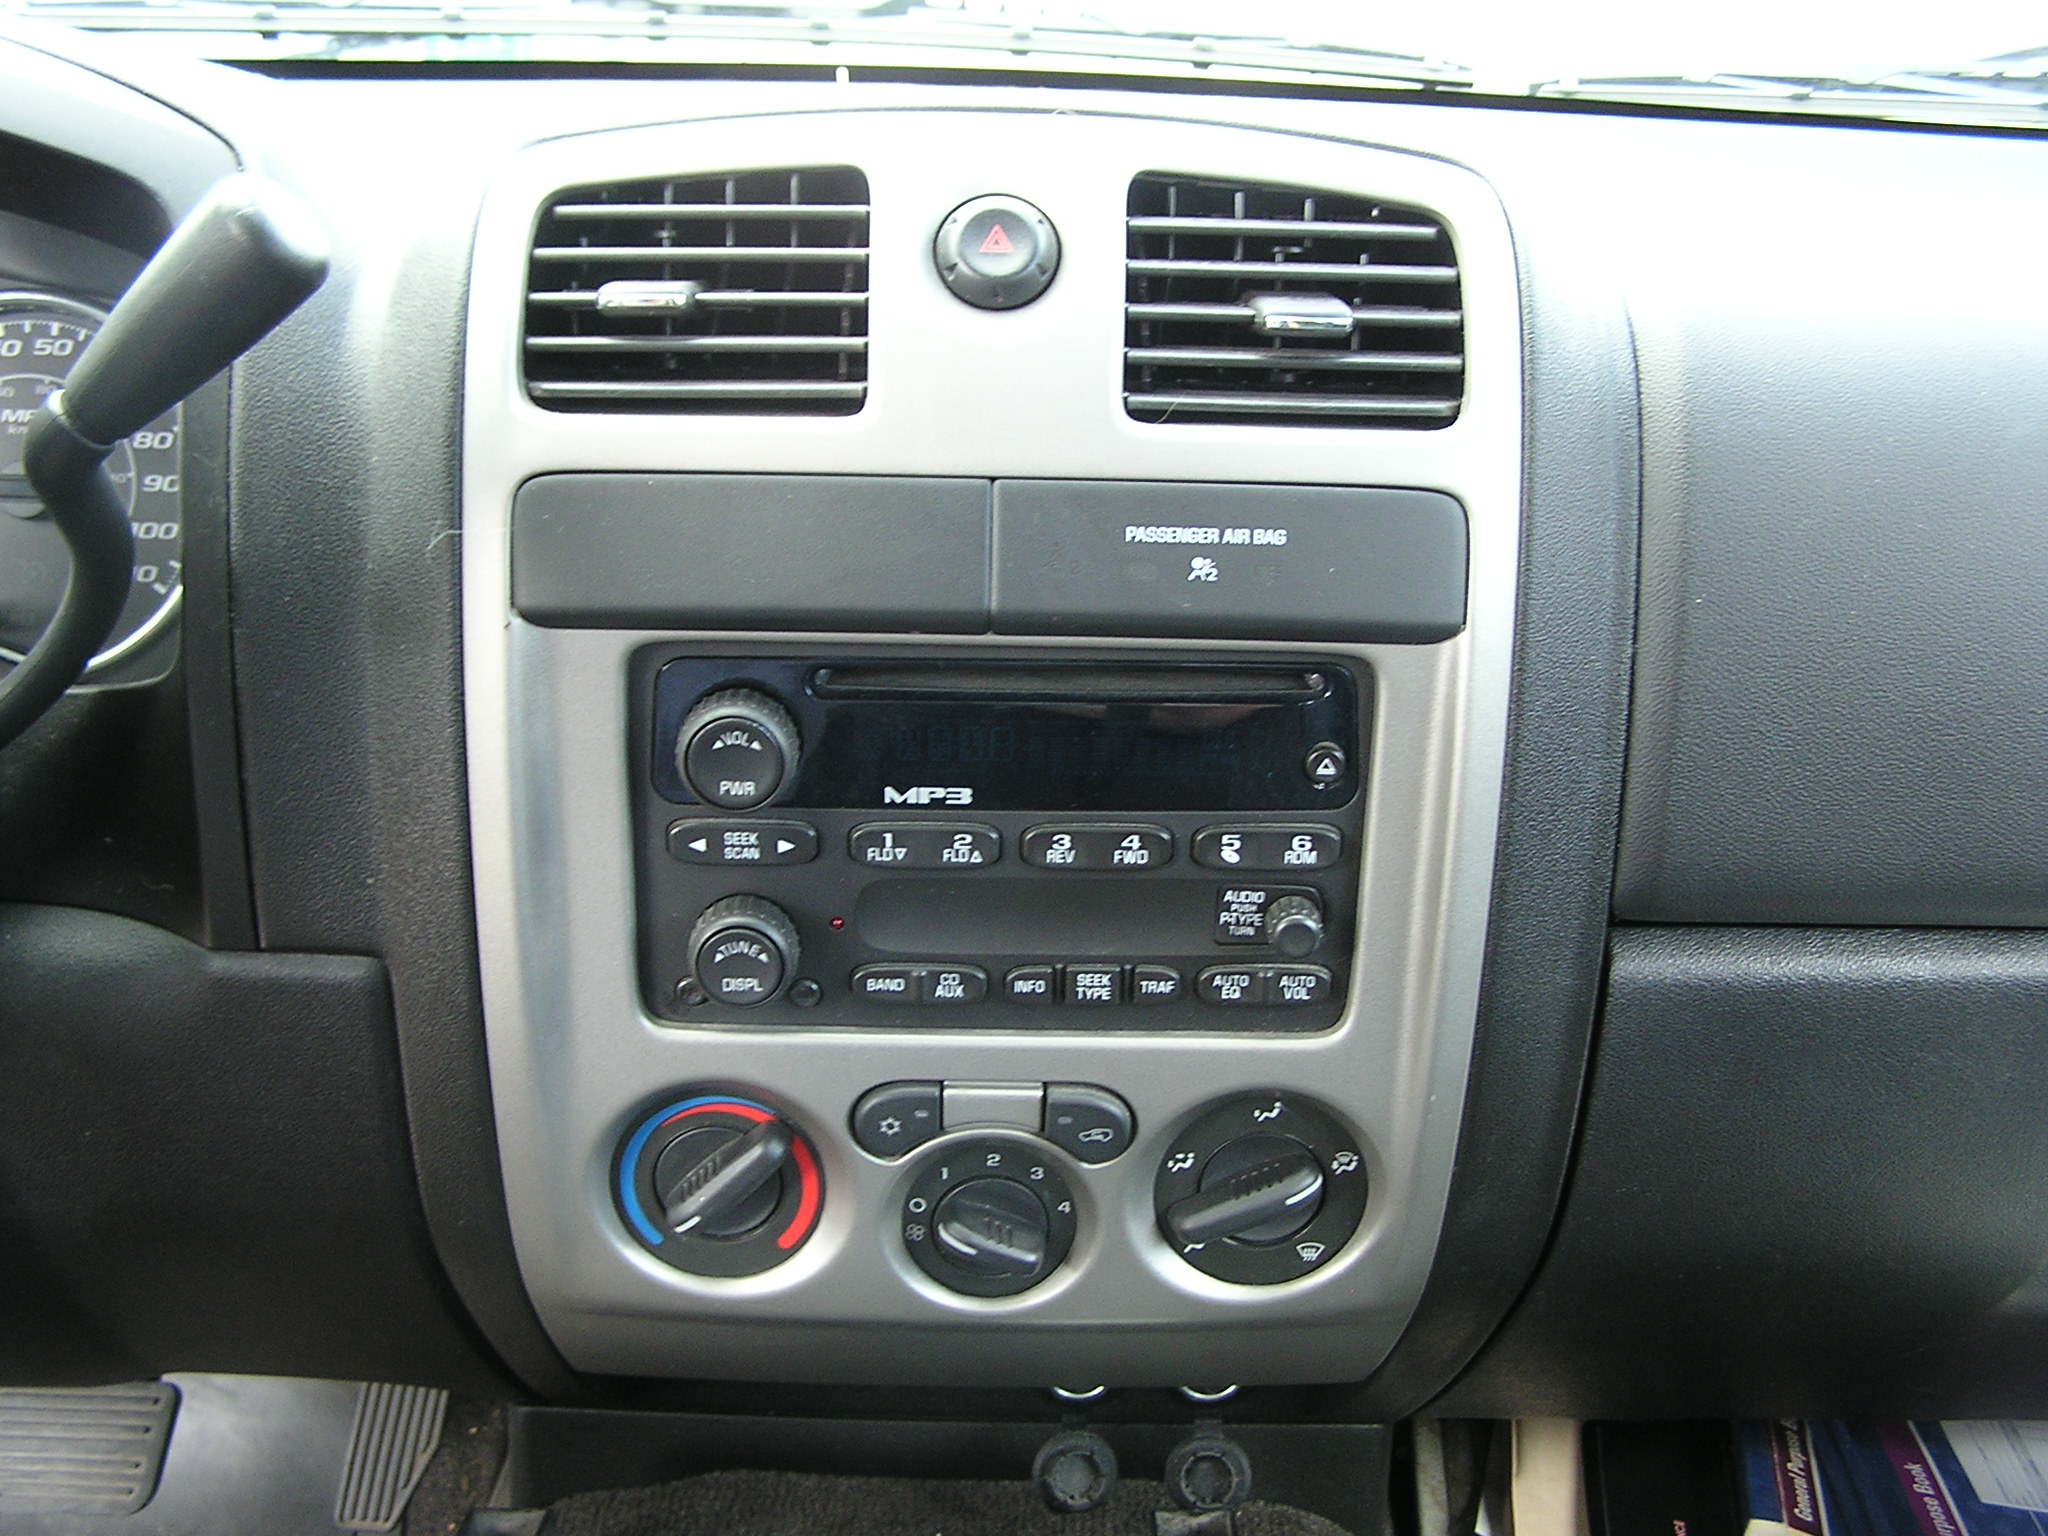 DIY GMC Canyon Car Stereo Removal, How to Remove GMC Canyon Car Radio